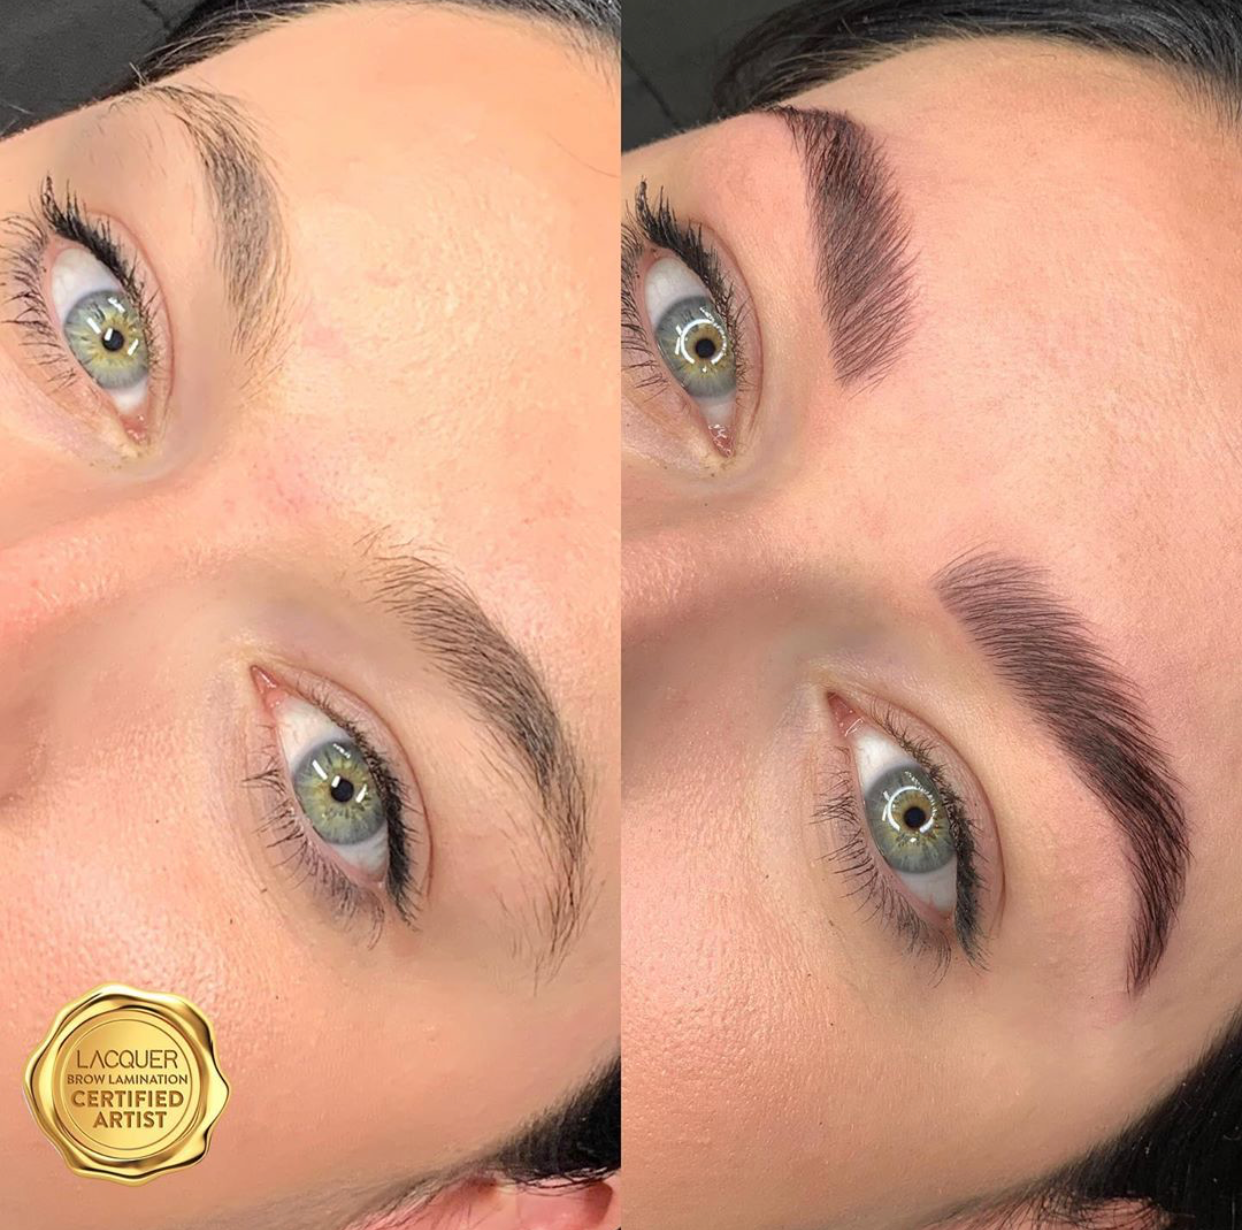 POLISHED LACQUER BROW with Nadia